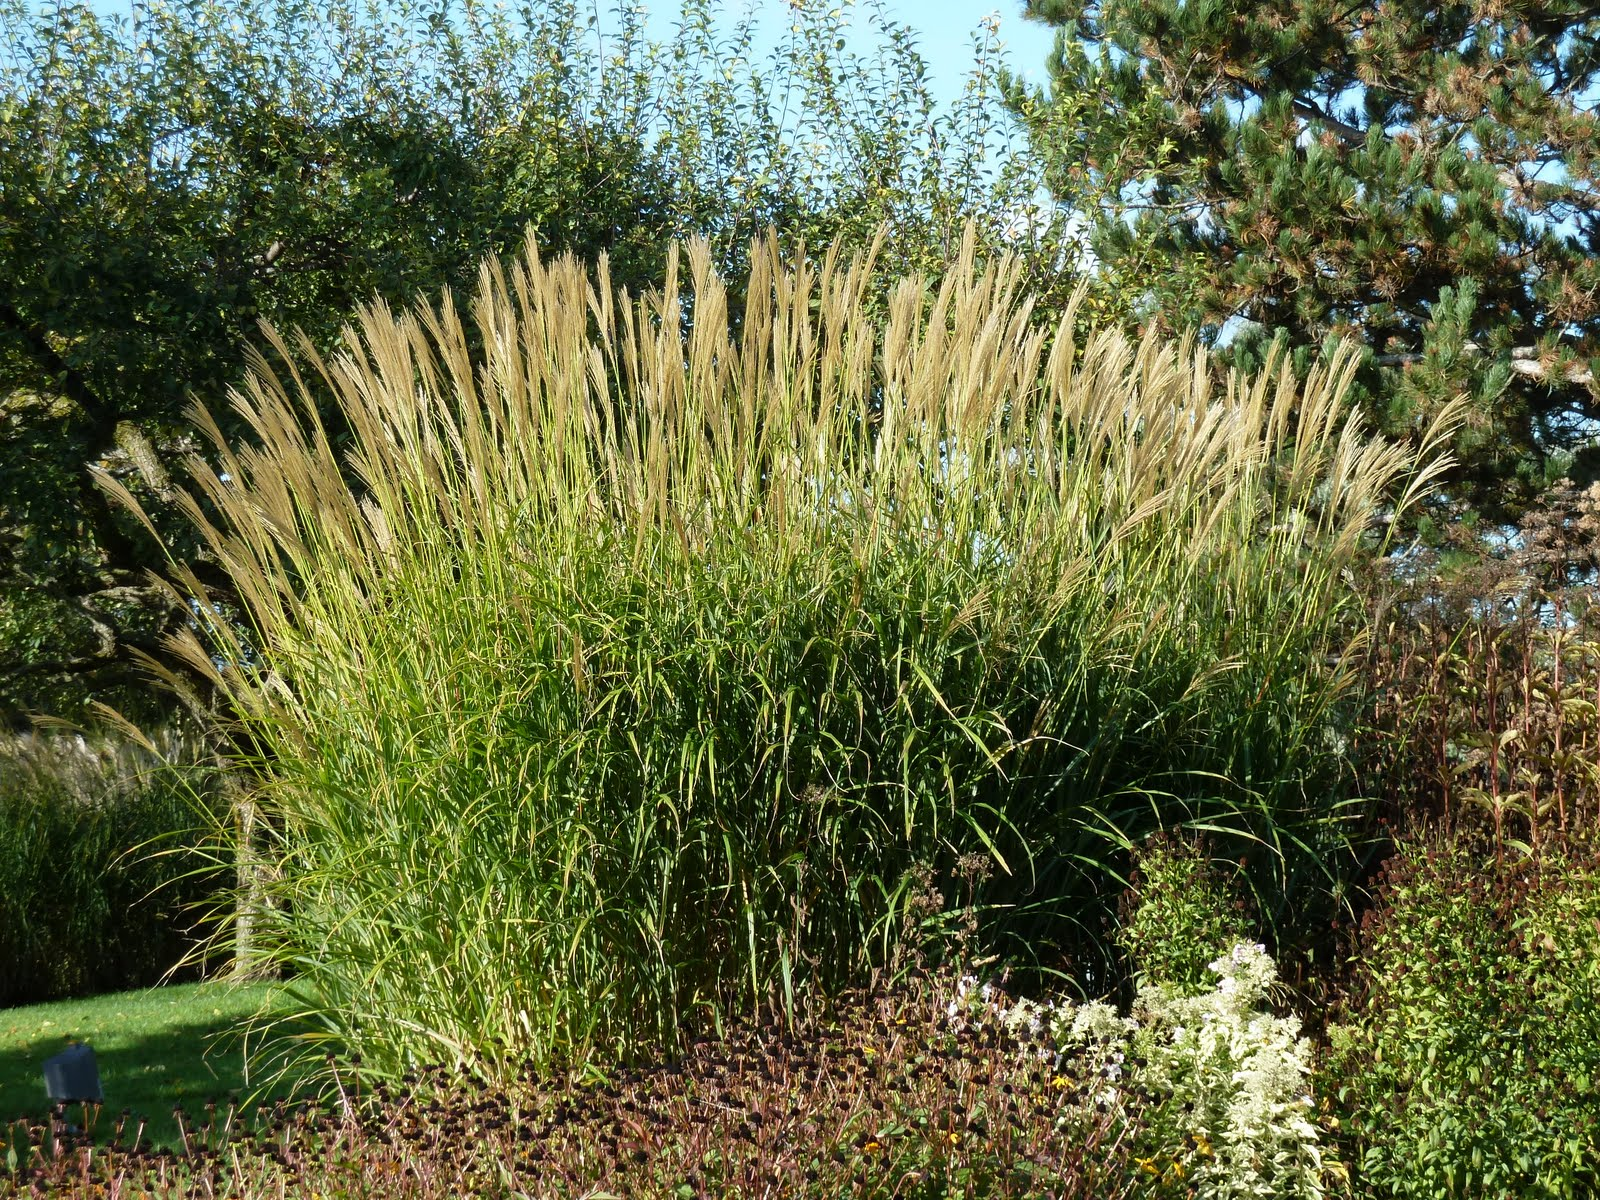 York downs golf and country club gardens 101 series for Decorative grasses